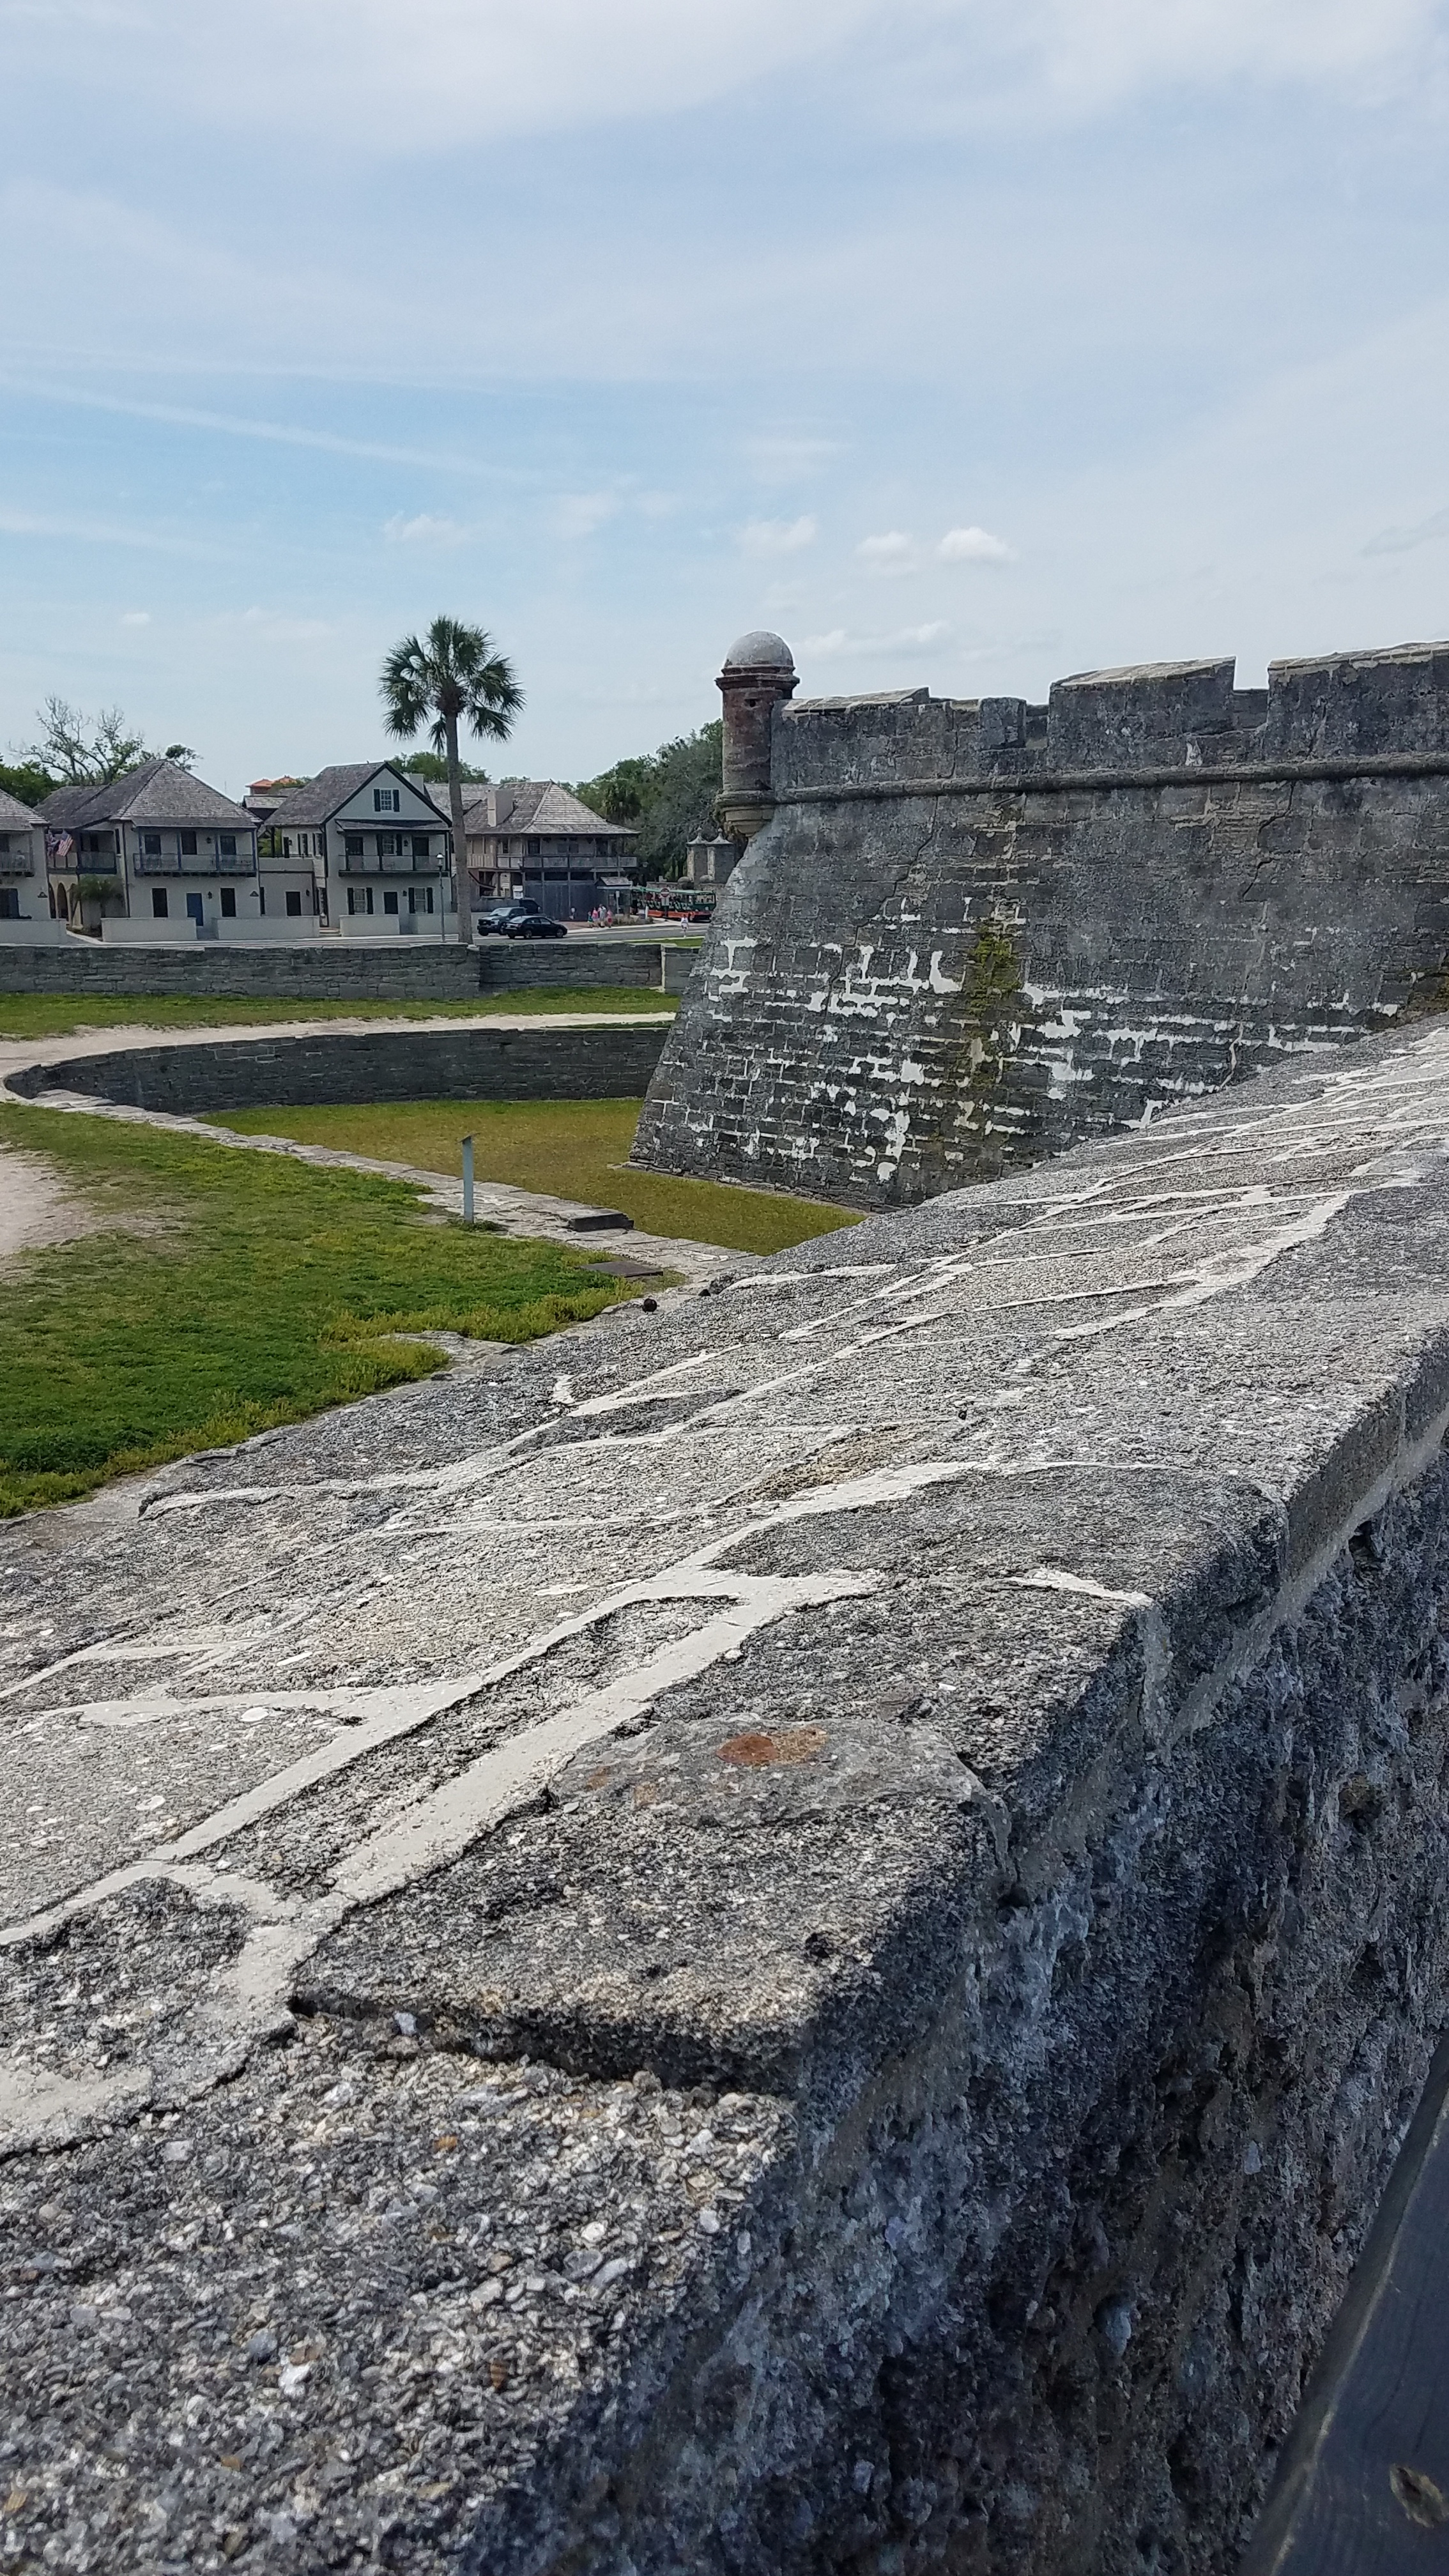 The Castillo de San Marcos completed in 1695